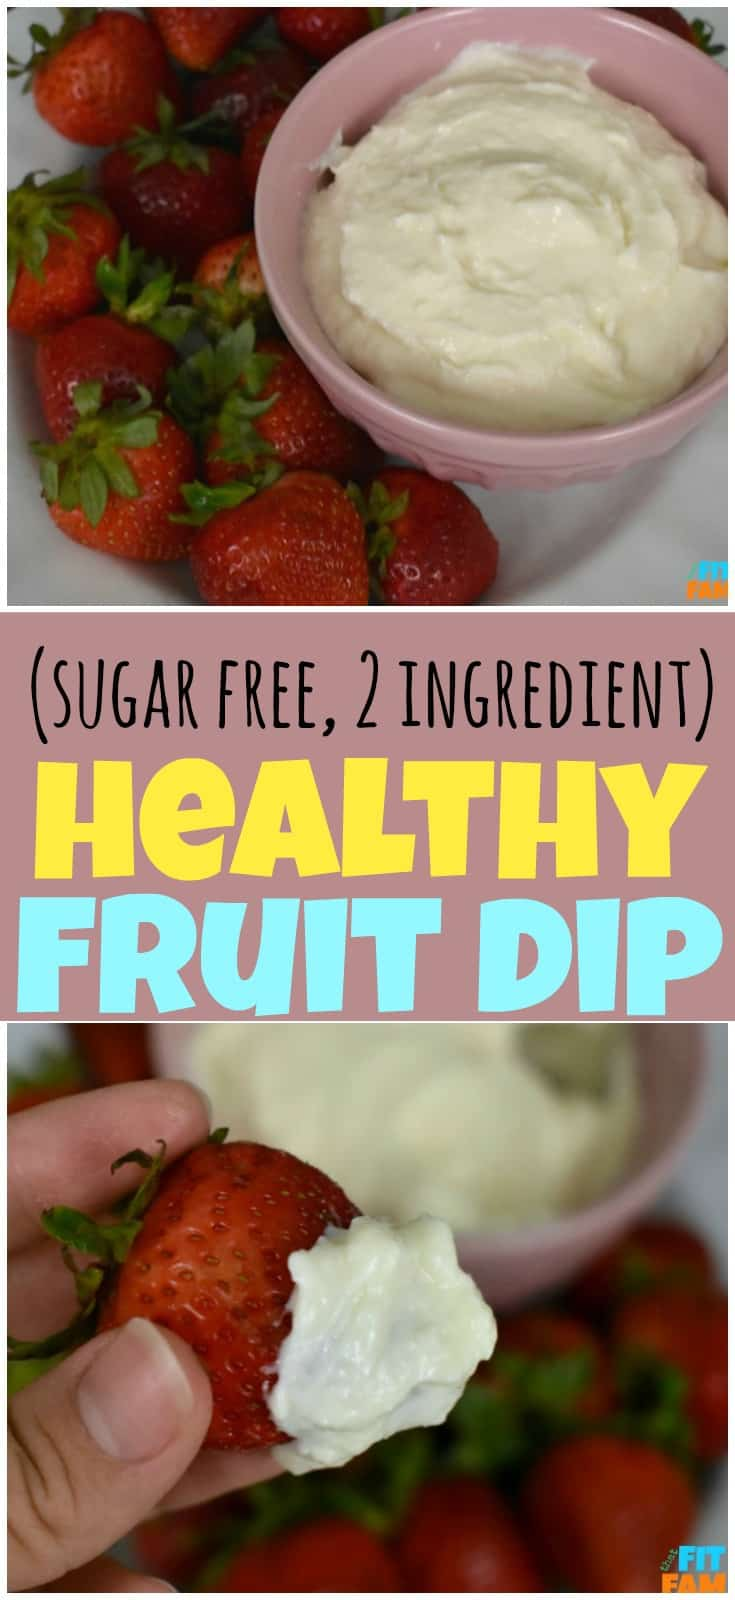 easy healthy fruit dip! sugar free and tastes so good even by itself! make a double batch! perfect party food!